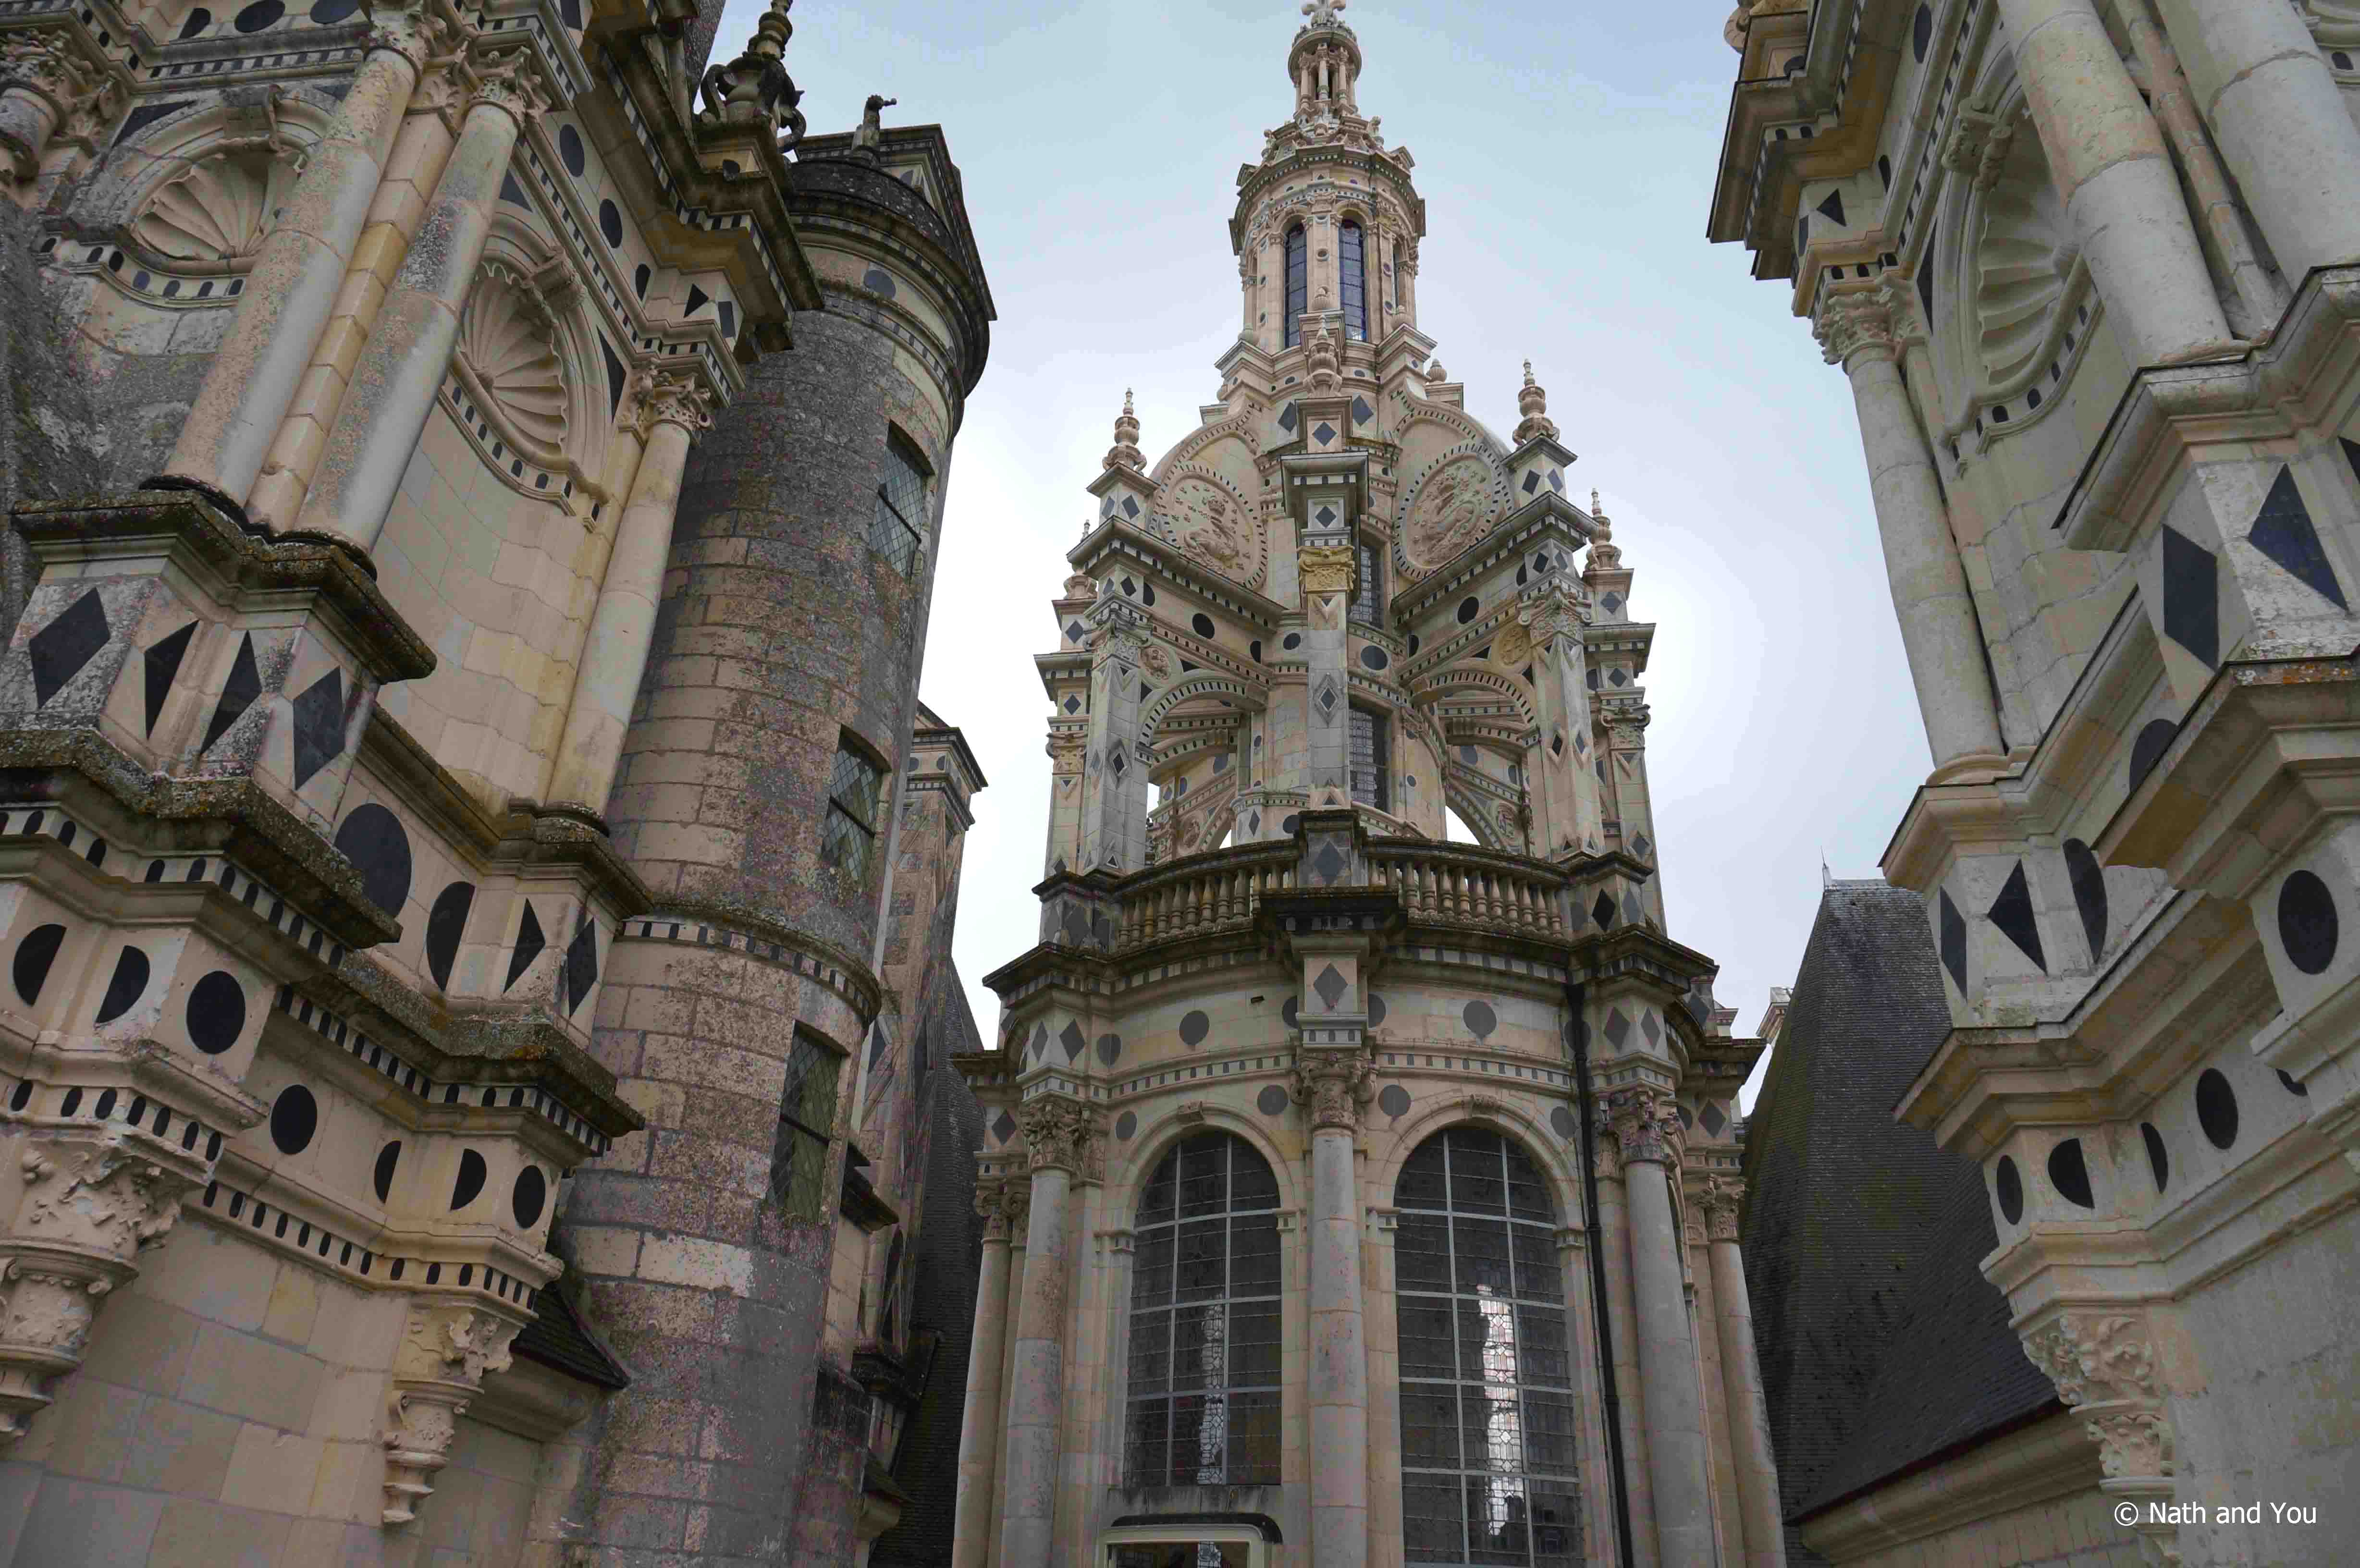 Chambord-5-Chateaux-Loire-Nath-and-You